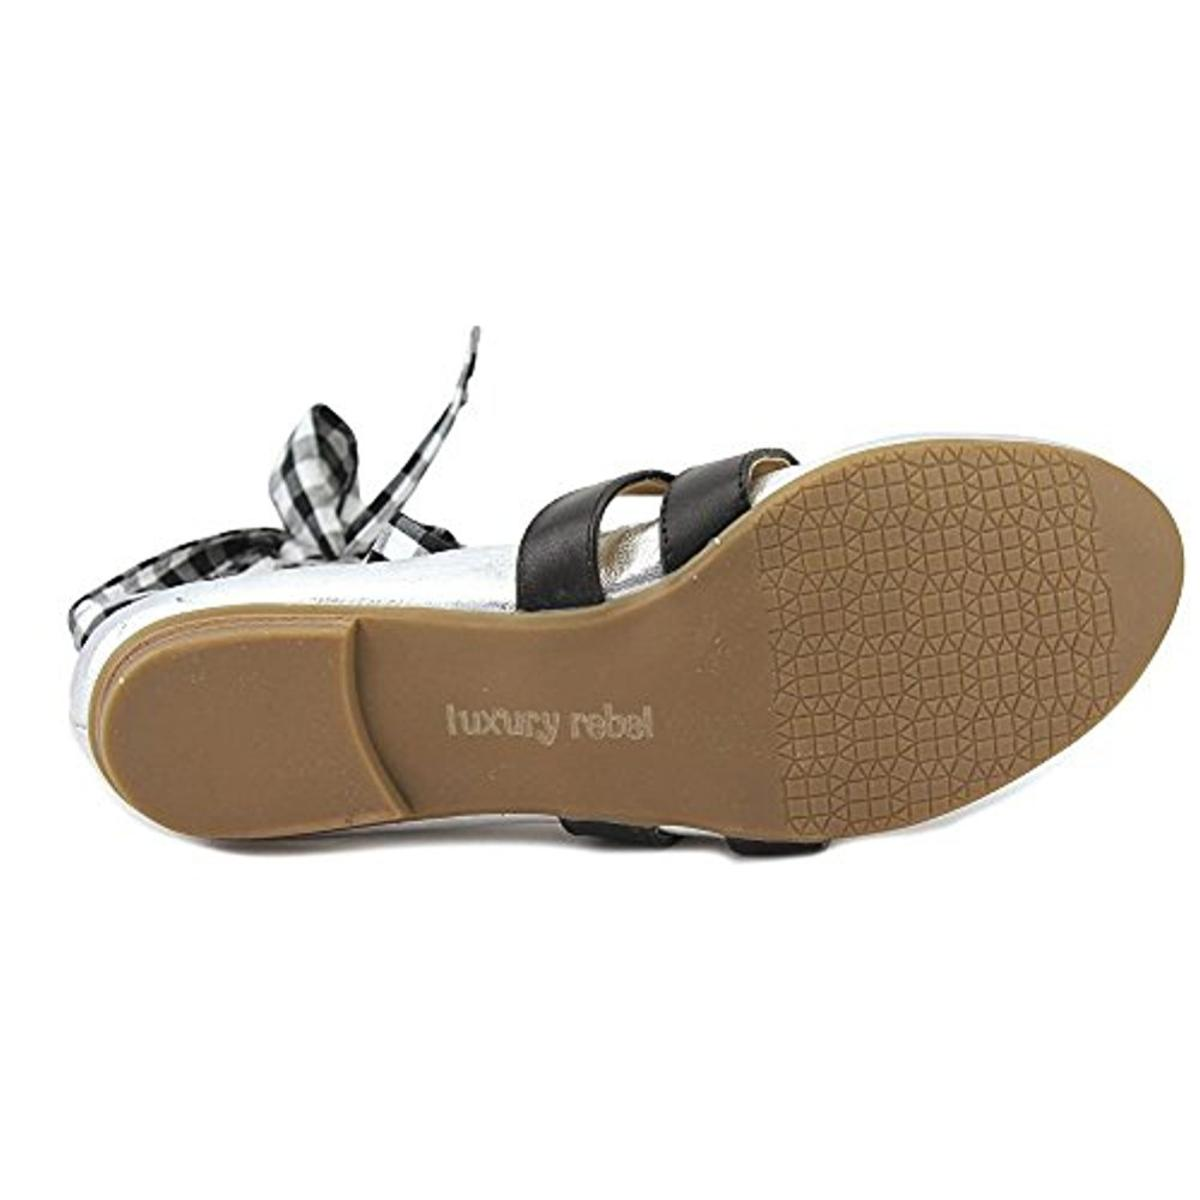 Luxury Rebel 3023 Womens Sari Buckle Strappy Ballet Flats Shoes BHFO